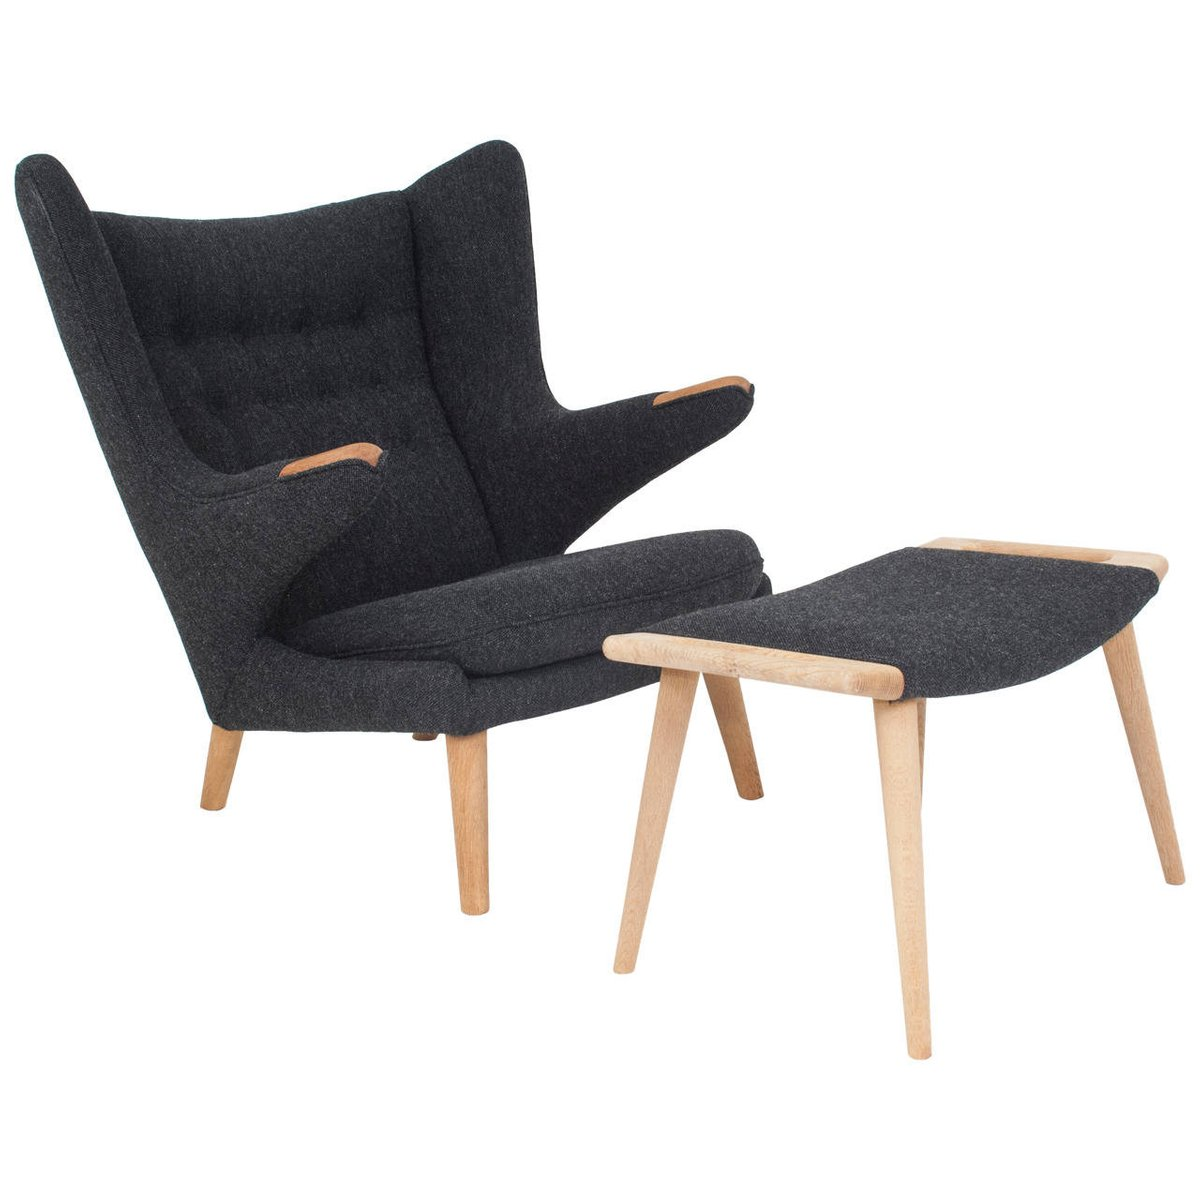 Danish Papa Bear Chair and Ottoman by Hans J Wegner for AP Stolen, 1951 for sale at Pamono